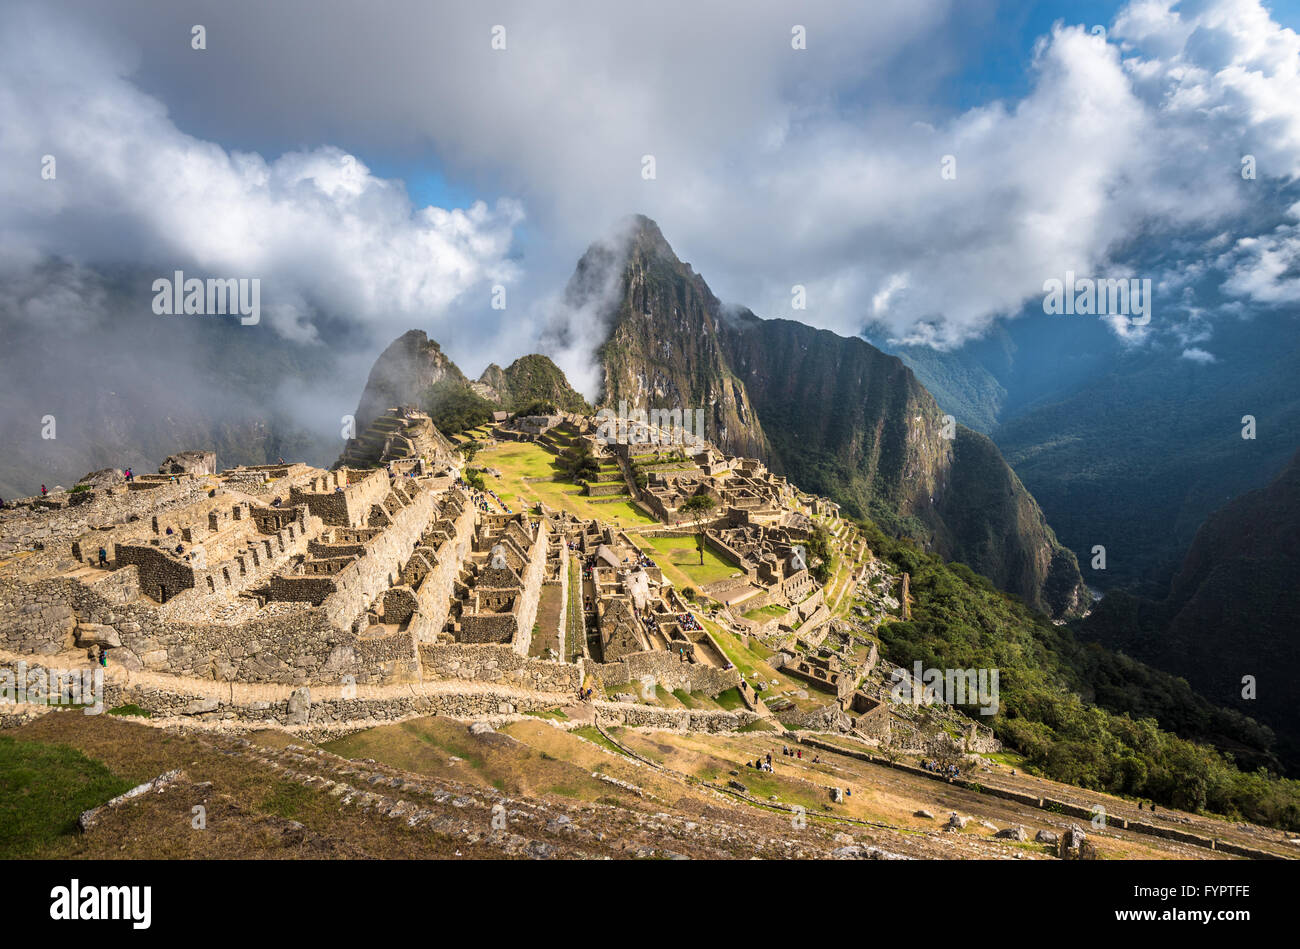 Machu Picchu, UNESCO World Heritage Site. One of the New Seven Wonders of the World. - Stock Image